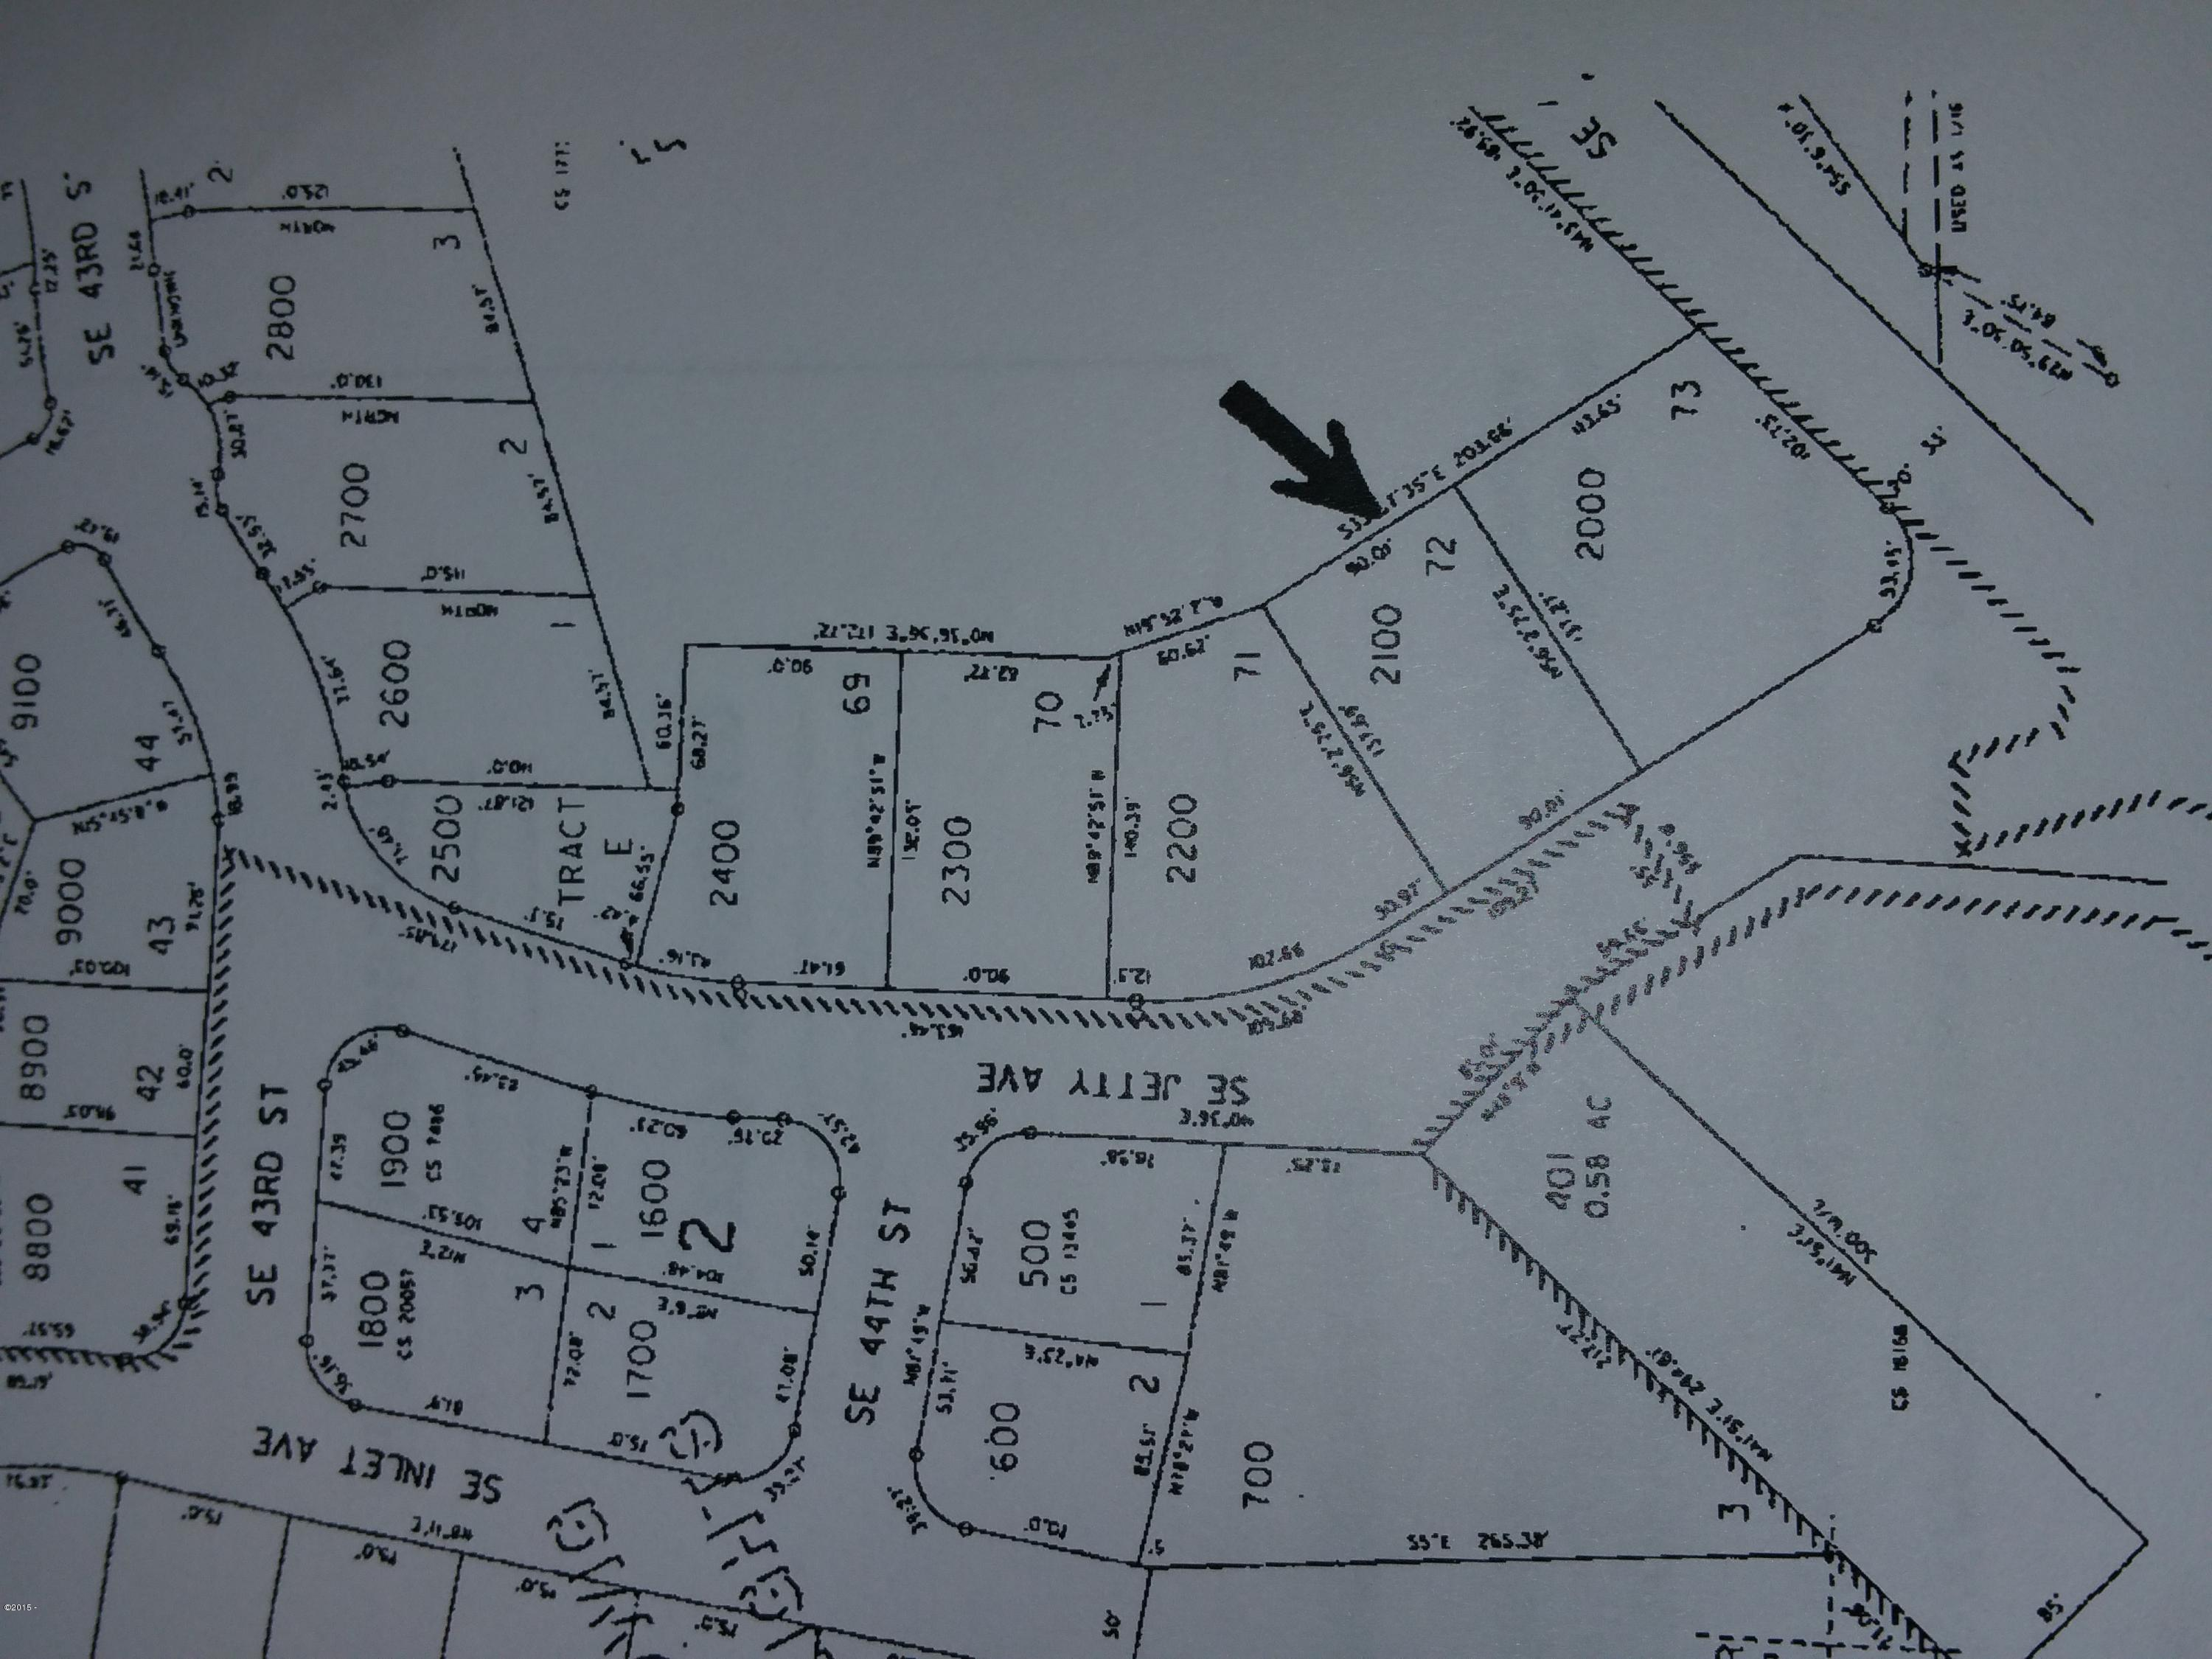 , Lincoln City, OR 97367 - Plat map